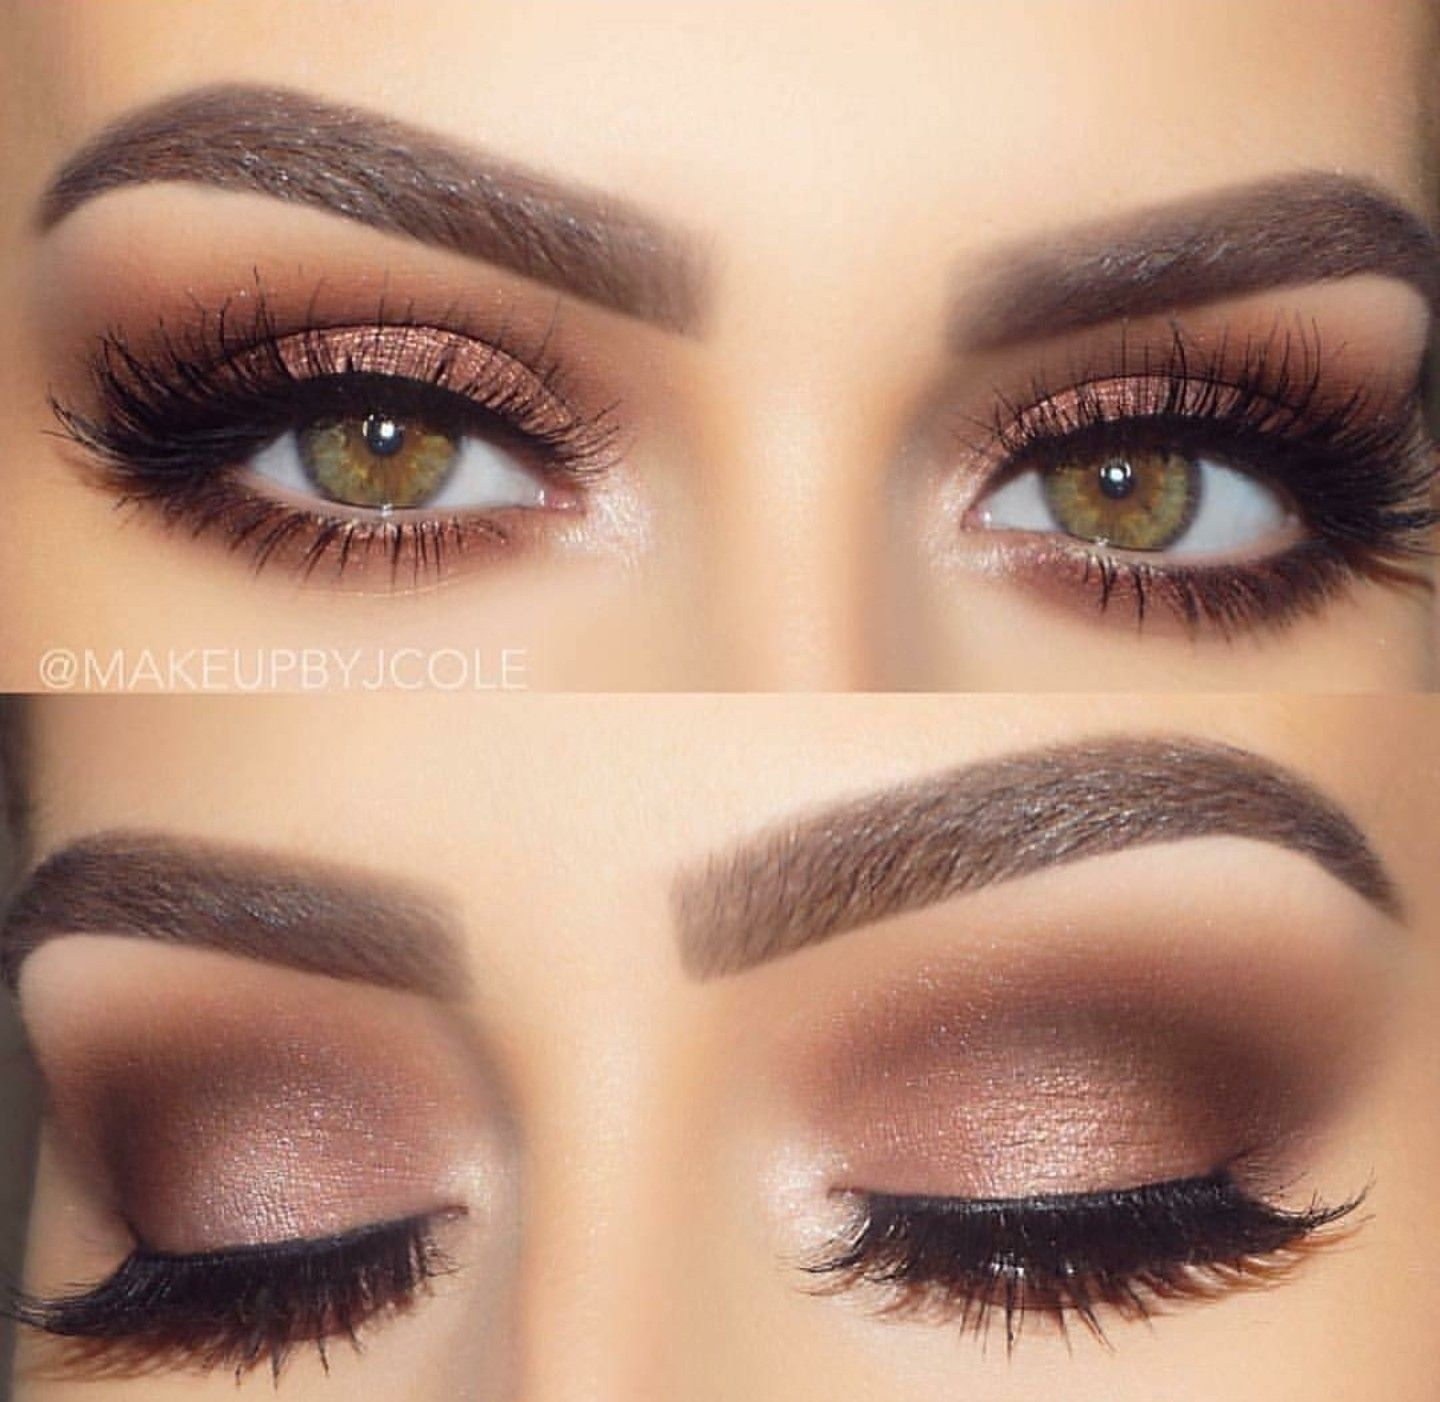 Makeup For Hazel Eyes | Makeup For Hazel Eyes, No Eyeliner intended for Prom Makeup Ideas For Hazel Eyes